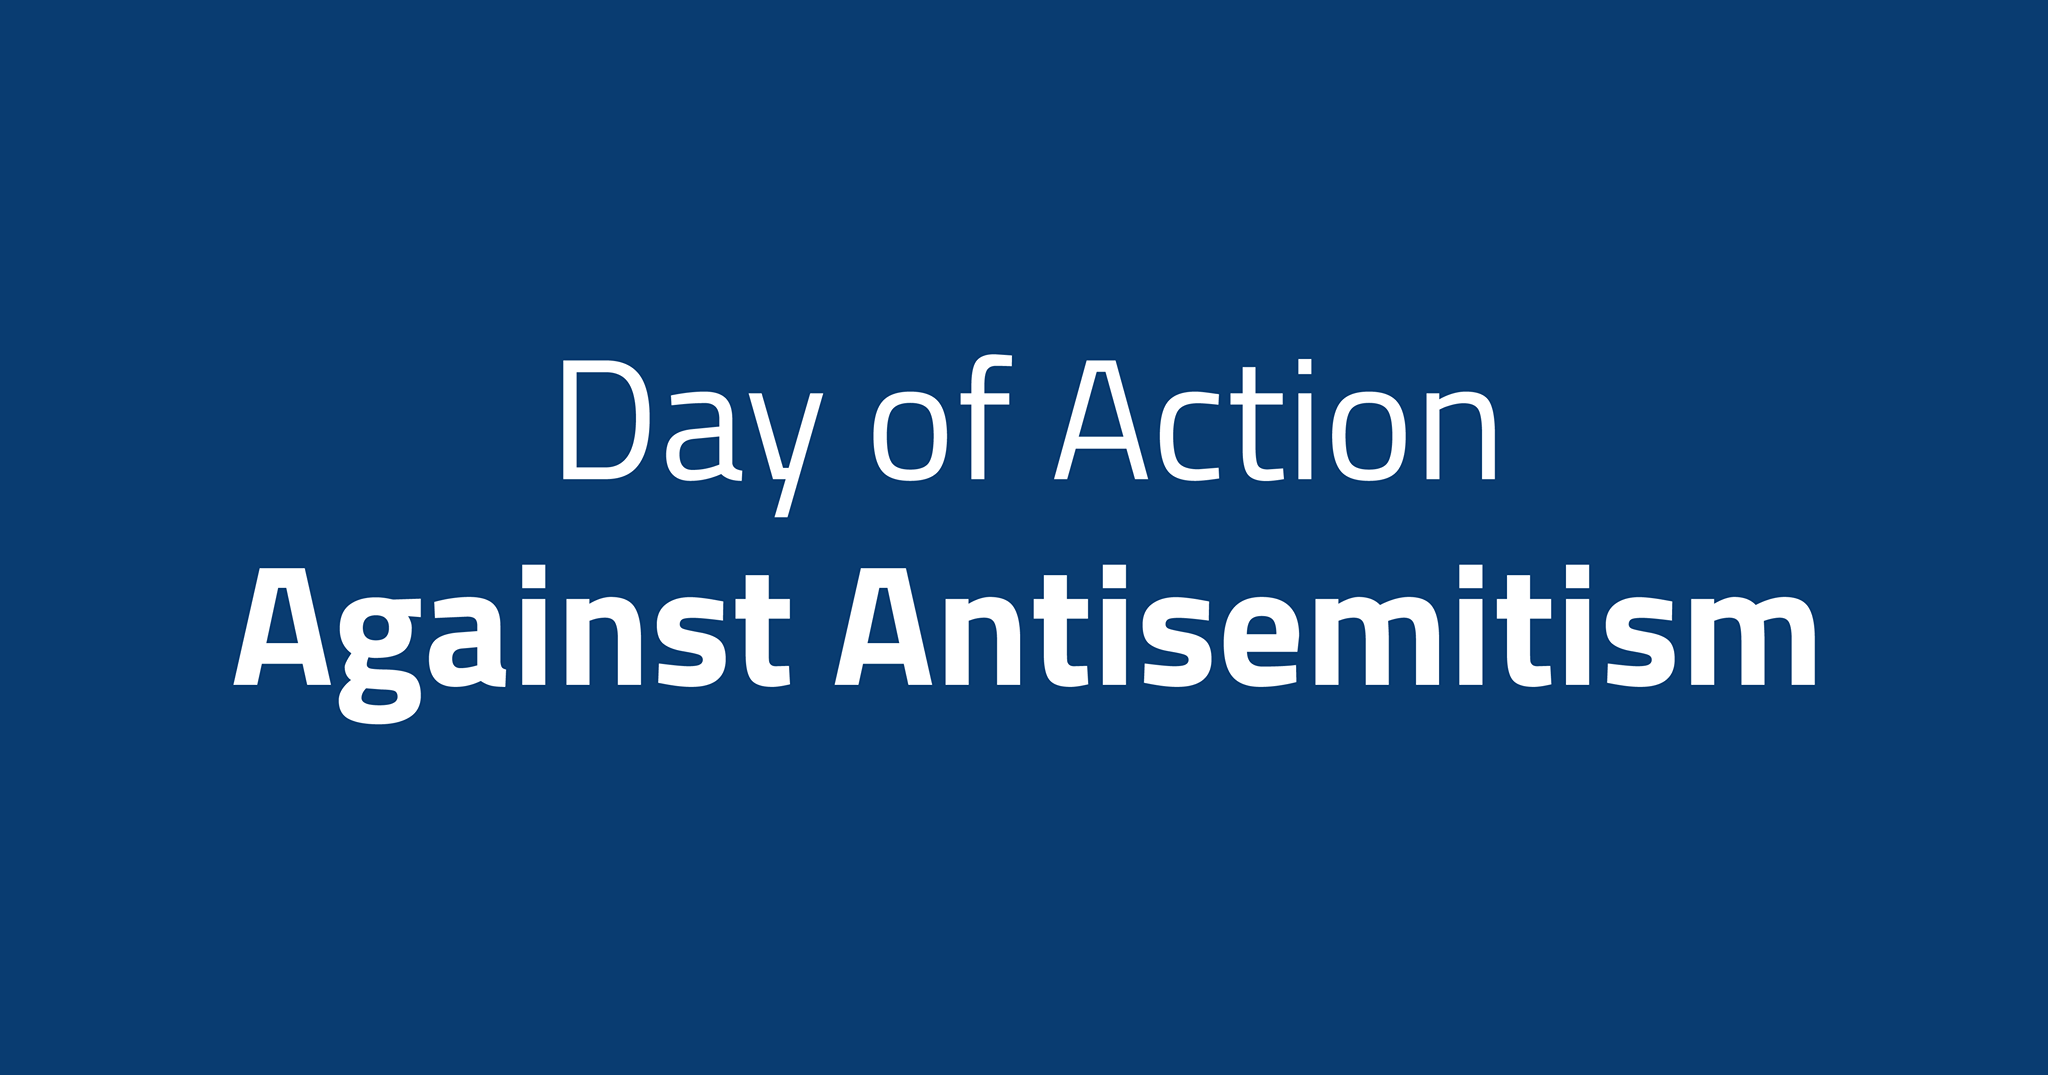 Day of Action against Antisemitism – May 27, 2021